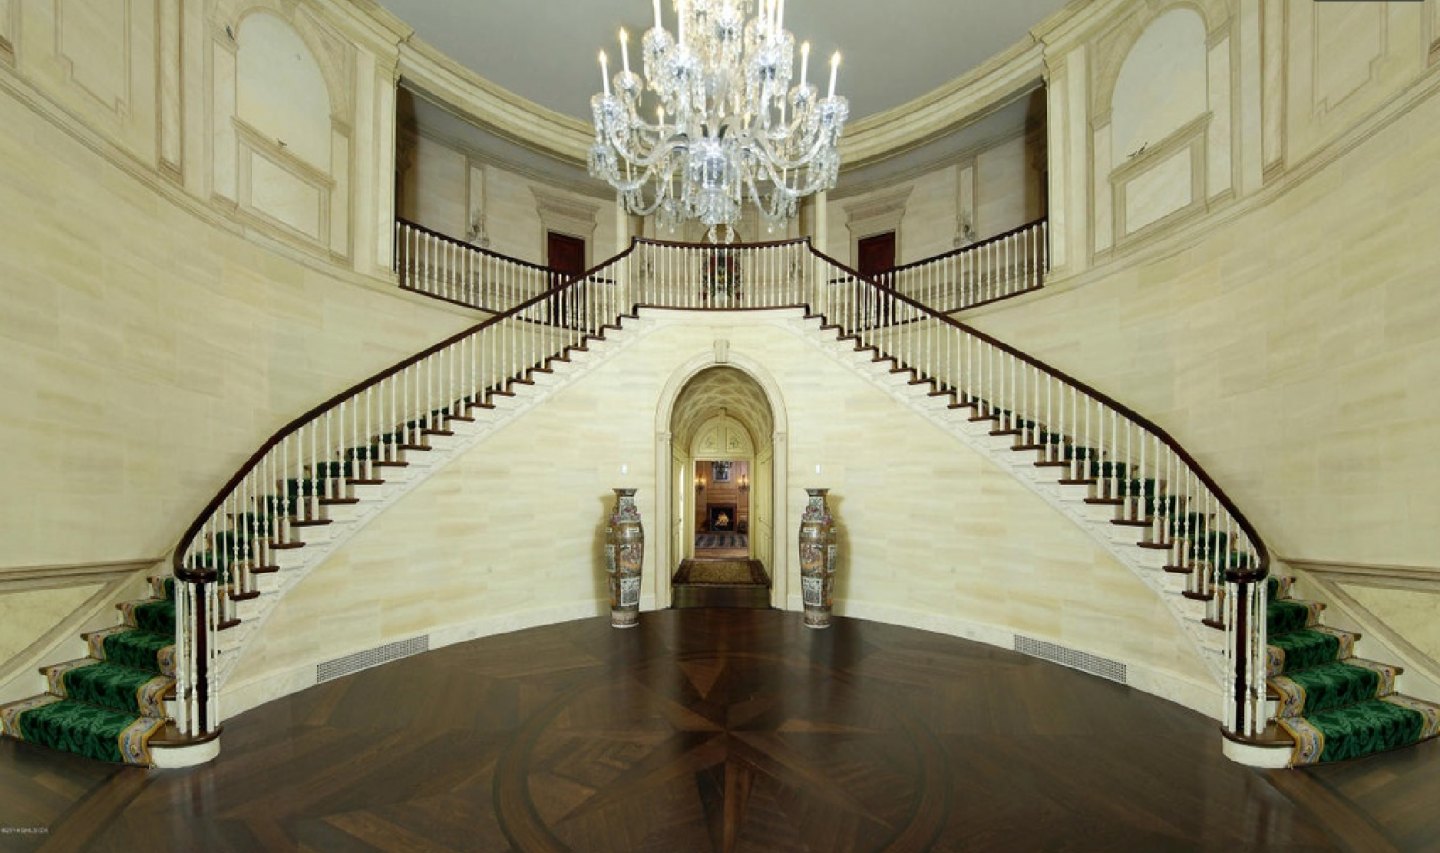 Grand double staircase in the foyer